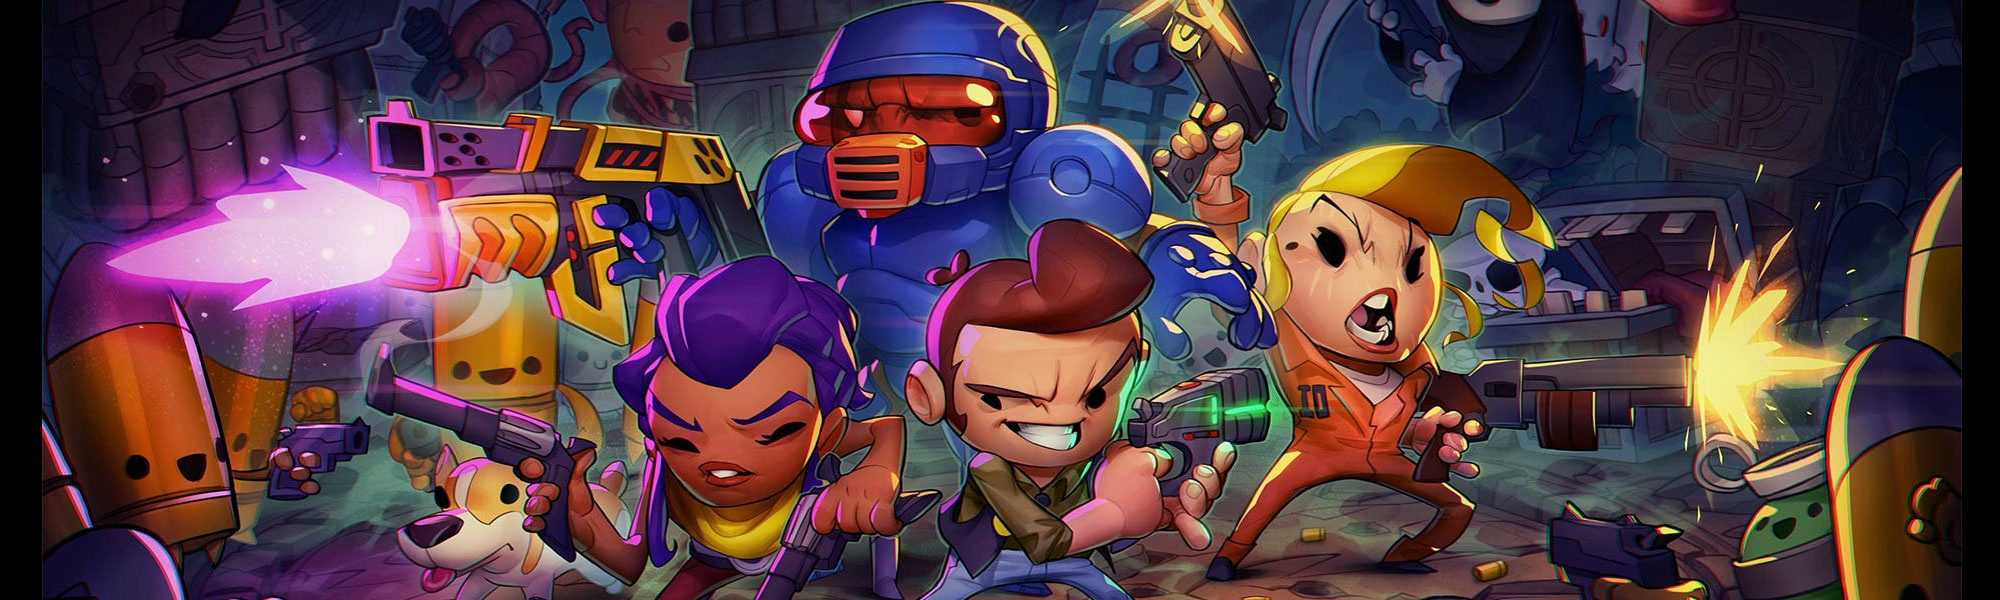 Special Reserve Games Reveals Enter The Gungeon Physical Switch